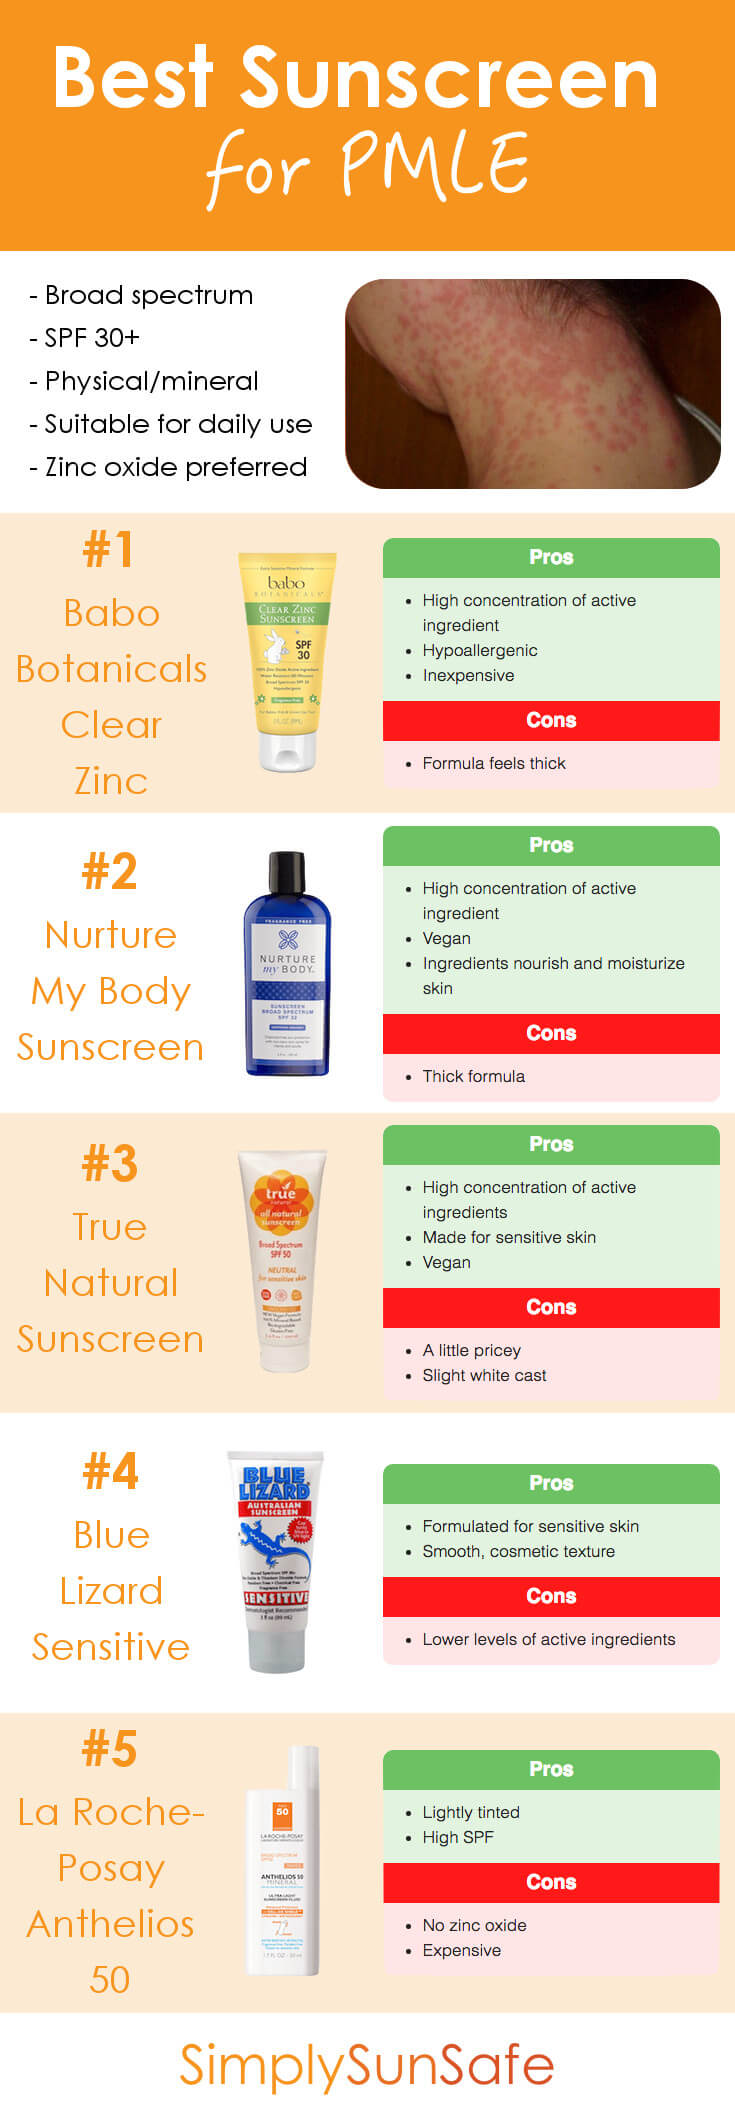 Best Sunscreen for PMLE Pinterest